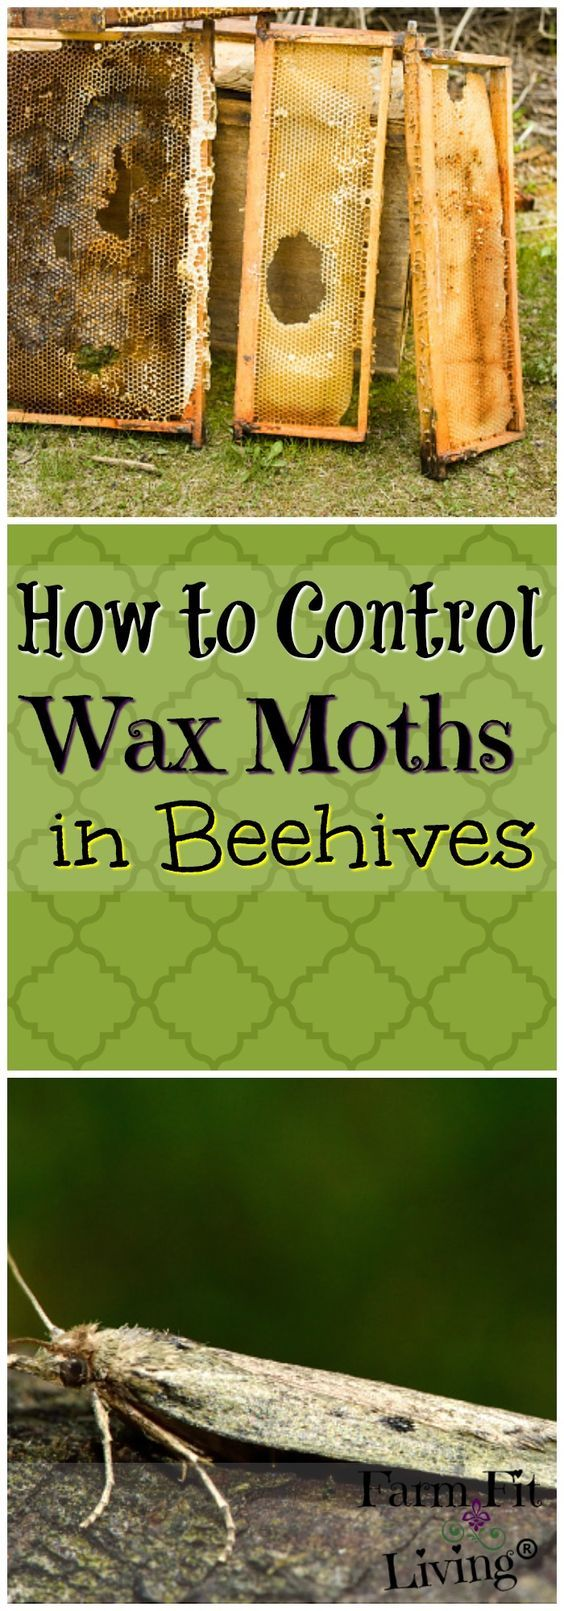 Looking for ways to control wax moths in beehives? Here, you'll find tips for prevention, control and identification.  via @www.pinterest.com/farmfitliving